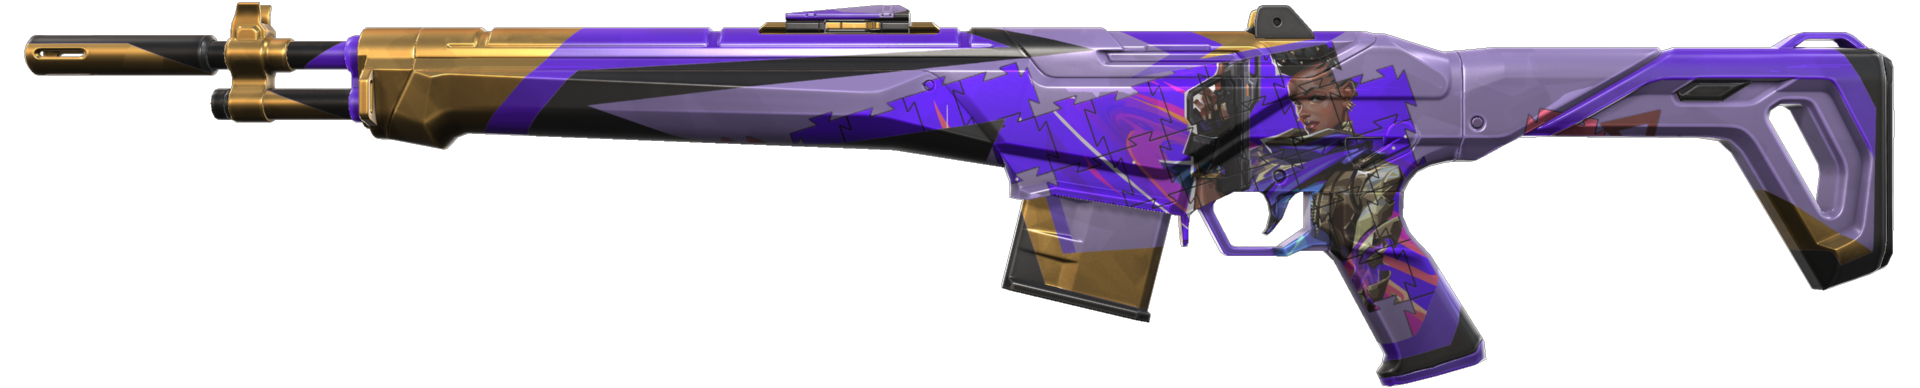 Guardian_Puzzle_Standard_SideView